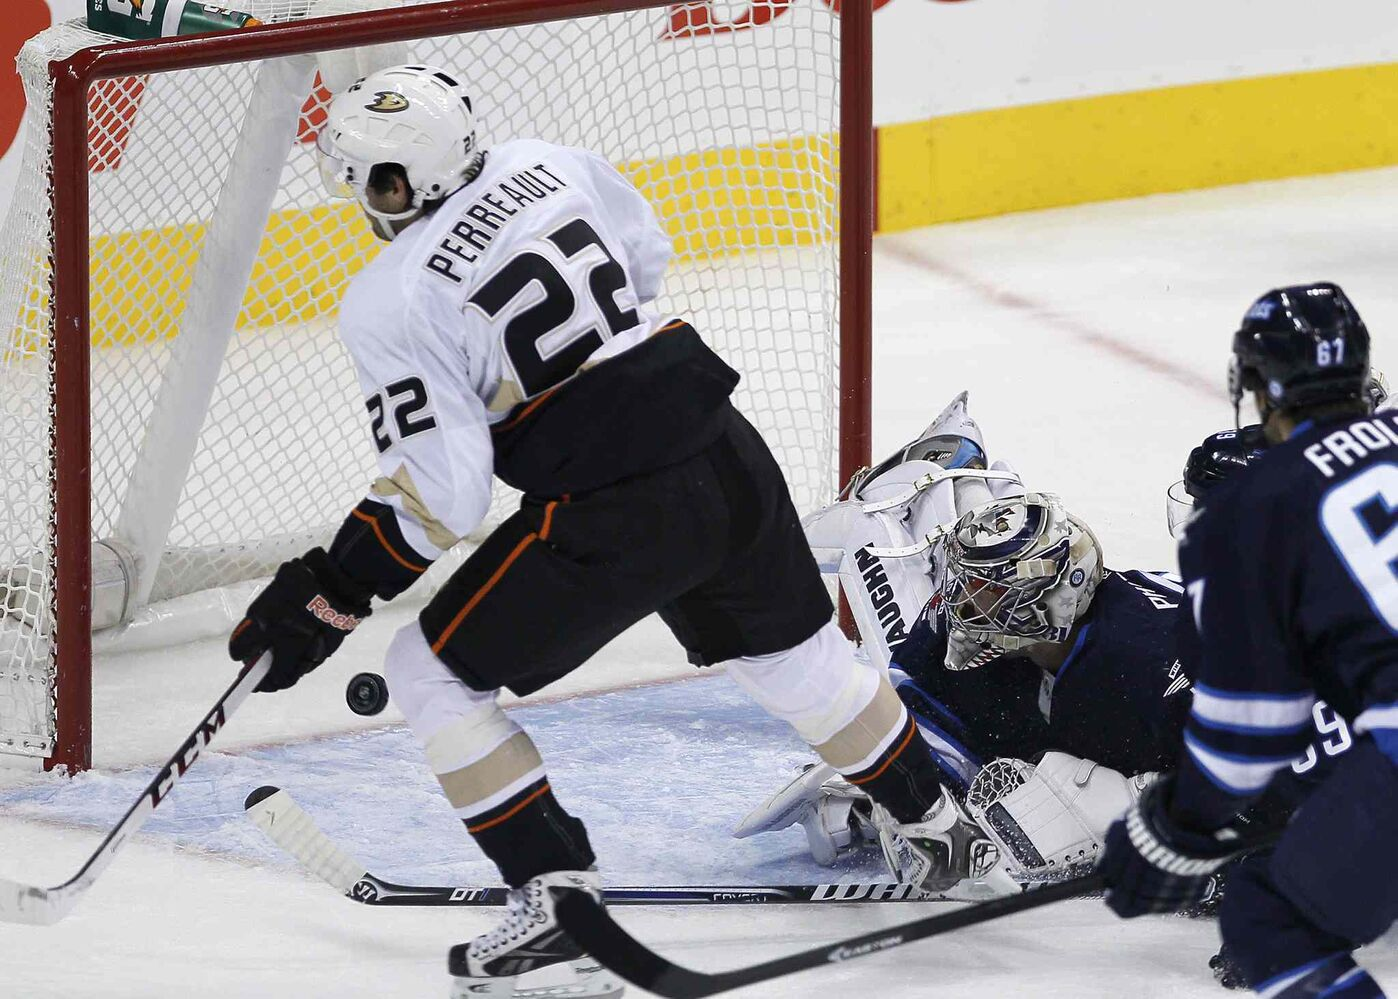 Ondrej Pavelec can't stop the shot from Anaheim Ducks' Mathieu Perreault in the first period.